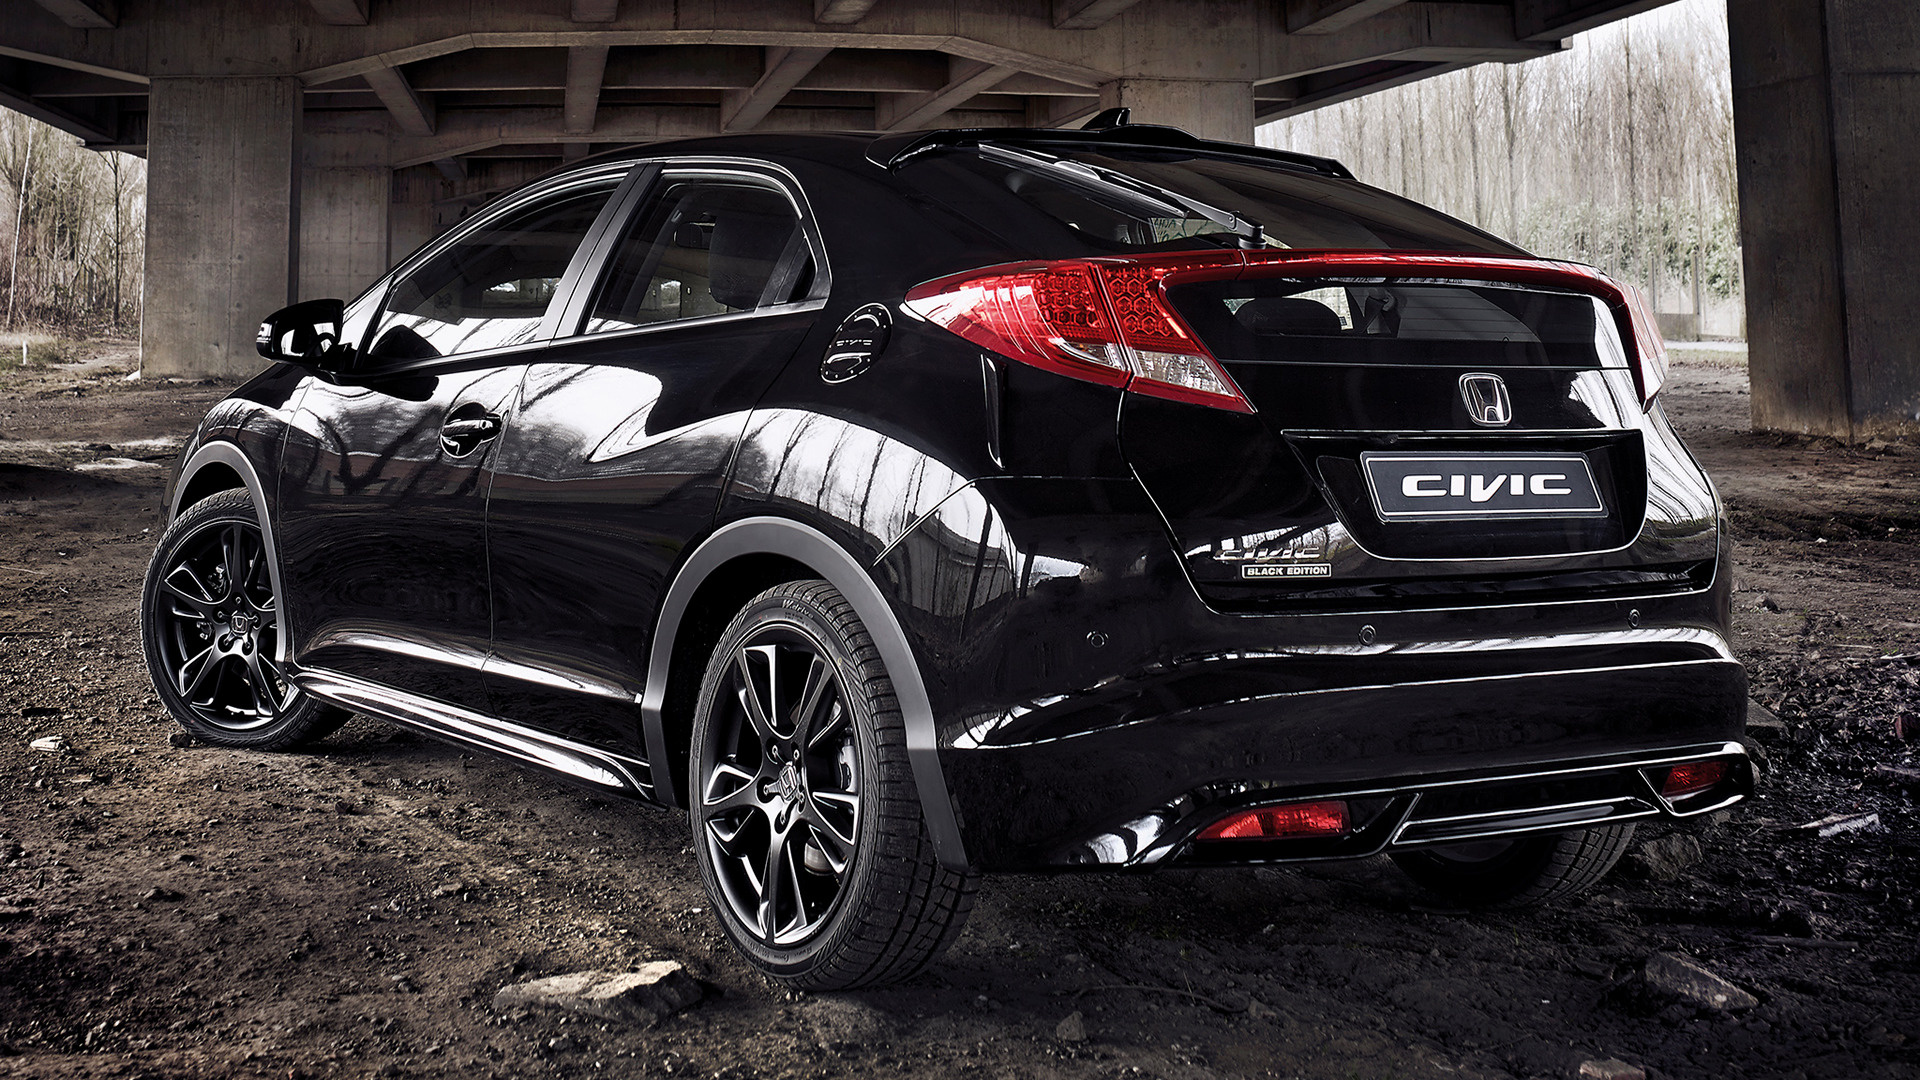 2014 Honda Civic Black Edition - Wallpapers and HD Images | Car Pixel